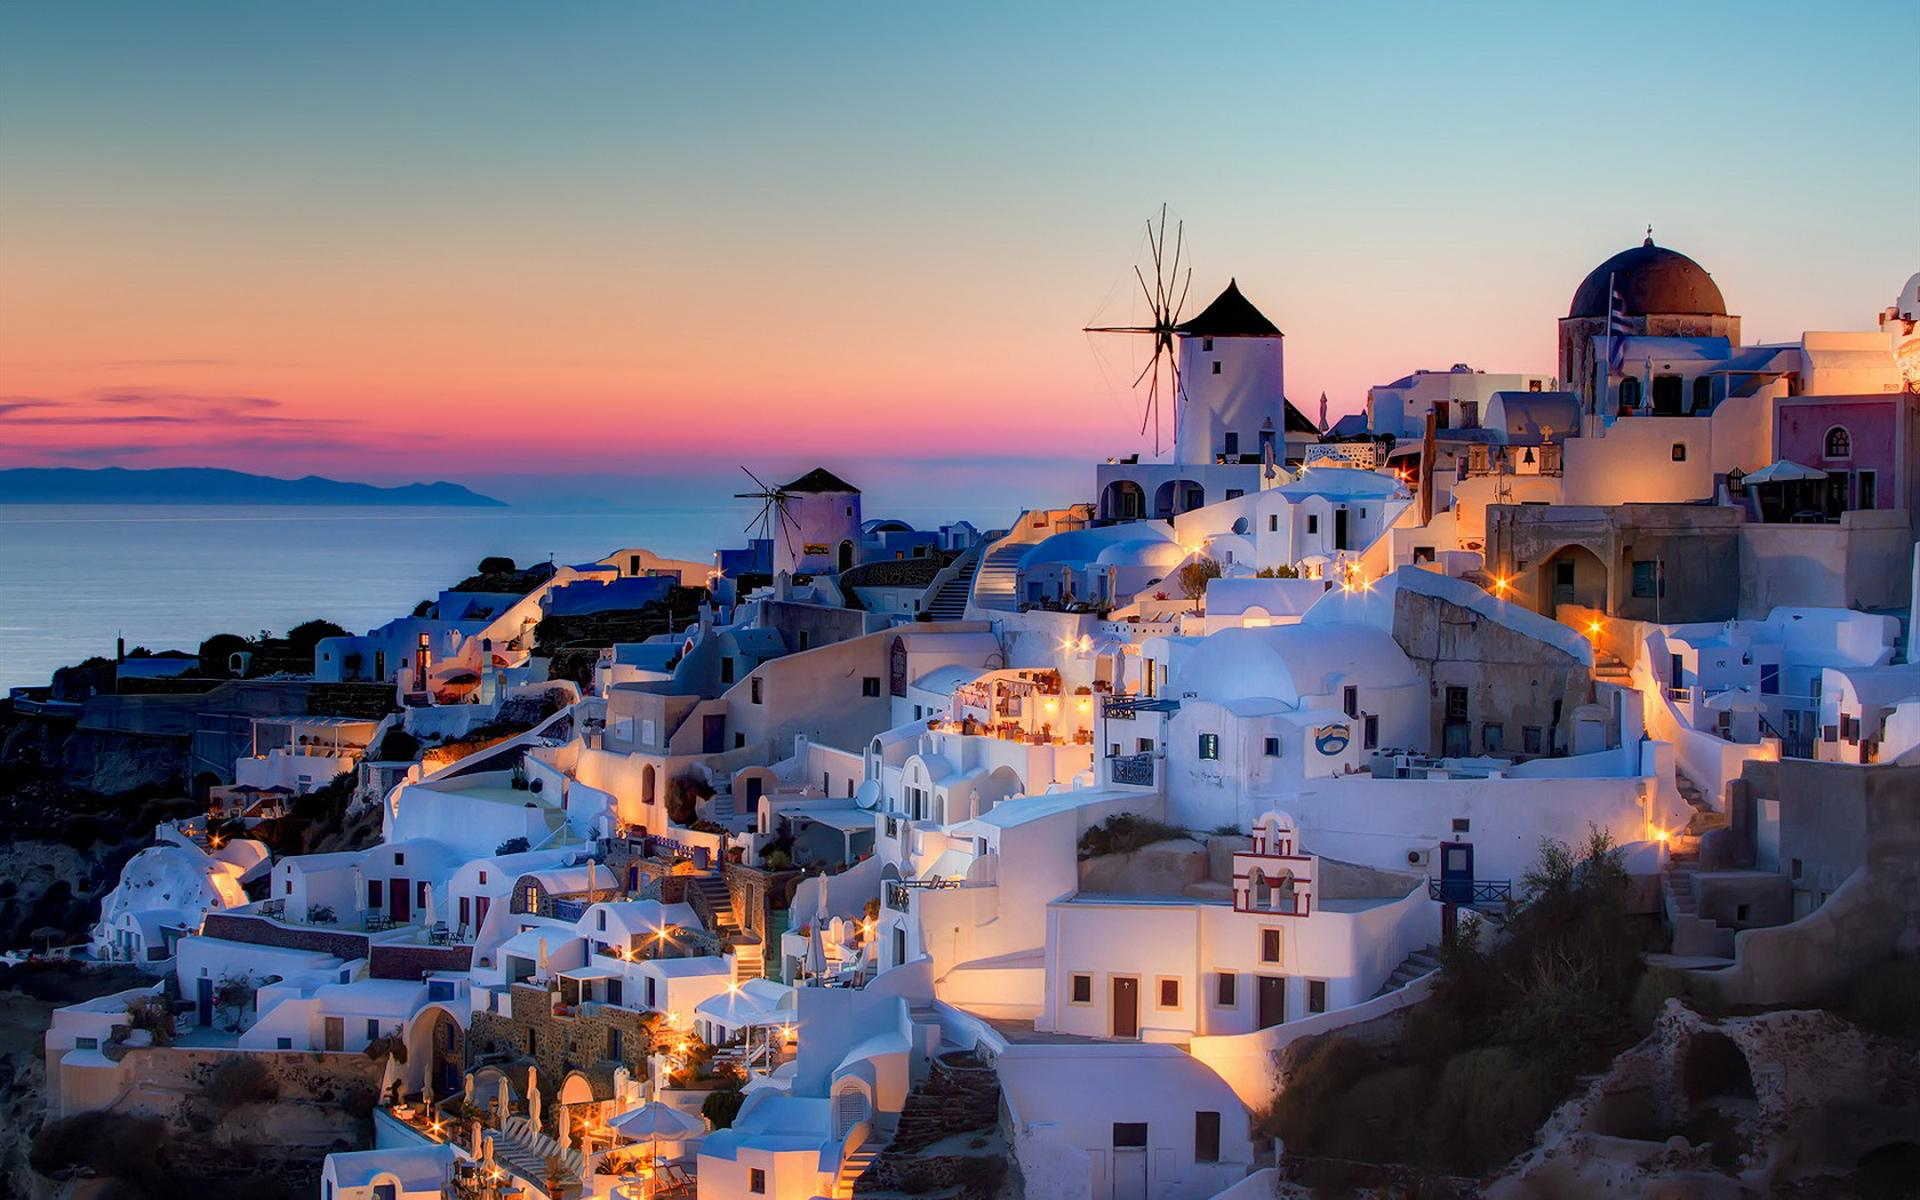 Santorini Wallpaper Deskto HD Wallpaper Background Images 1920x1200